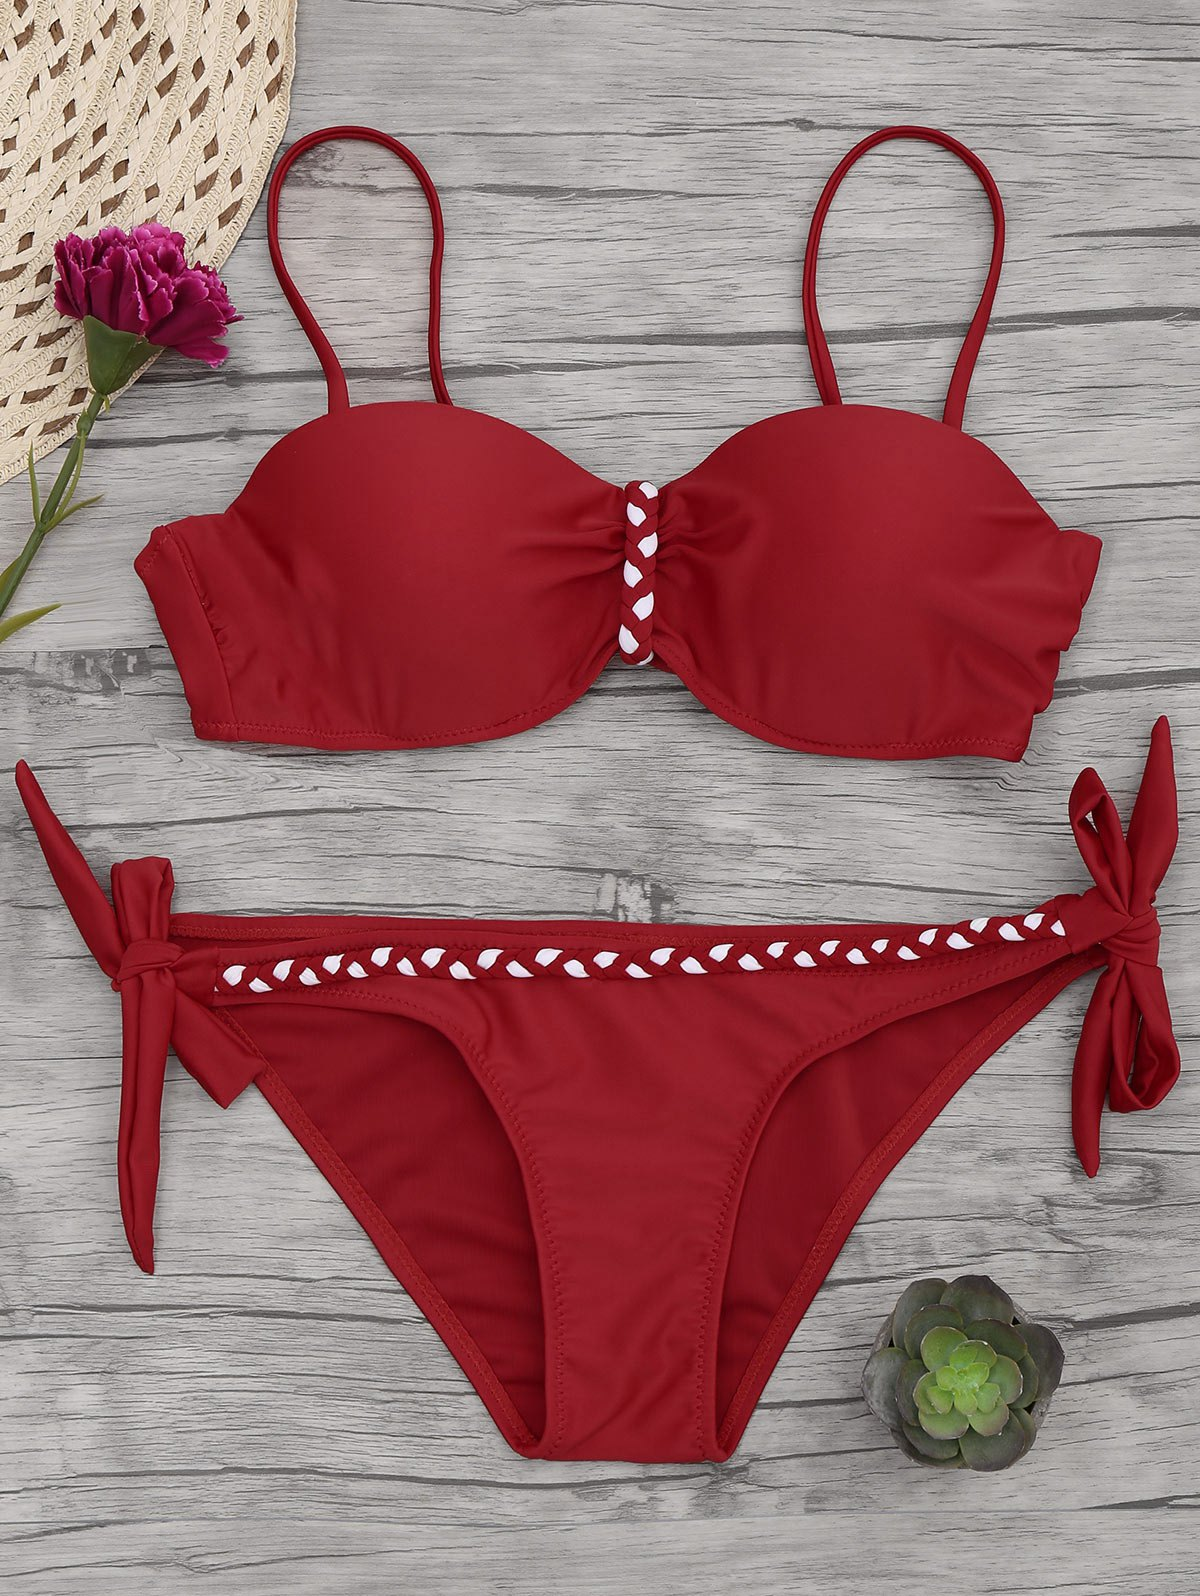 Underwire Braided Molded Cup Bikini Set 213632903